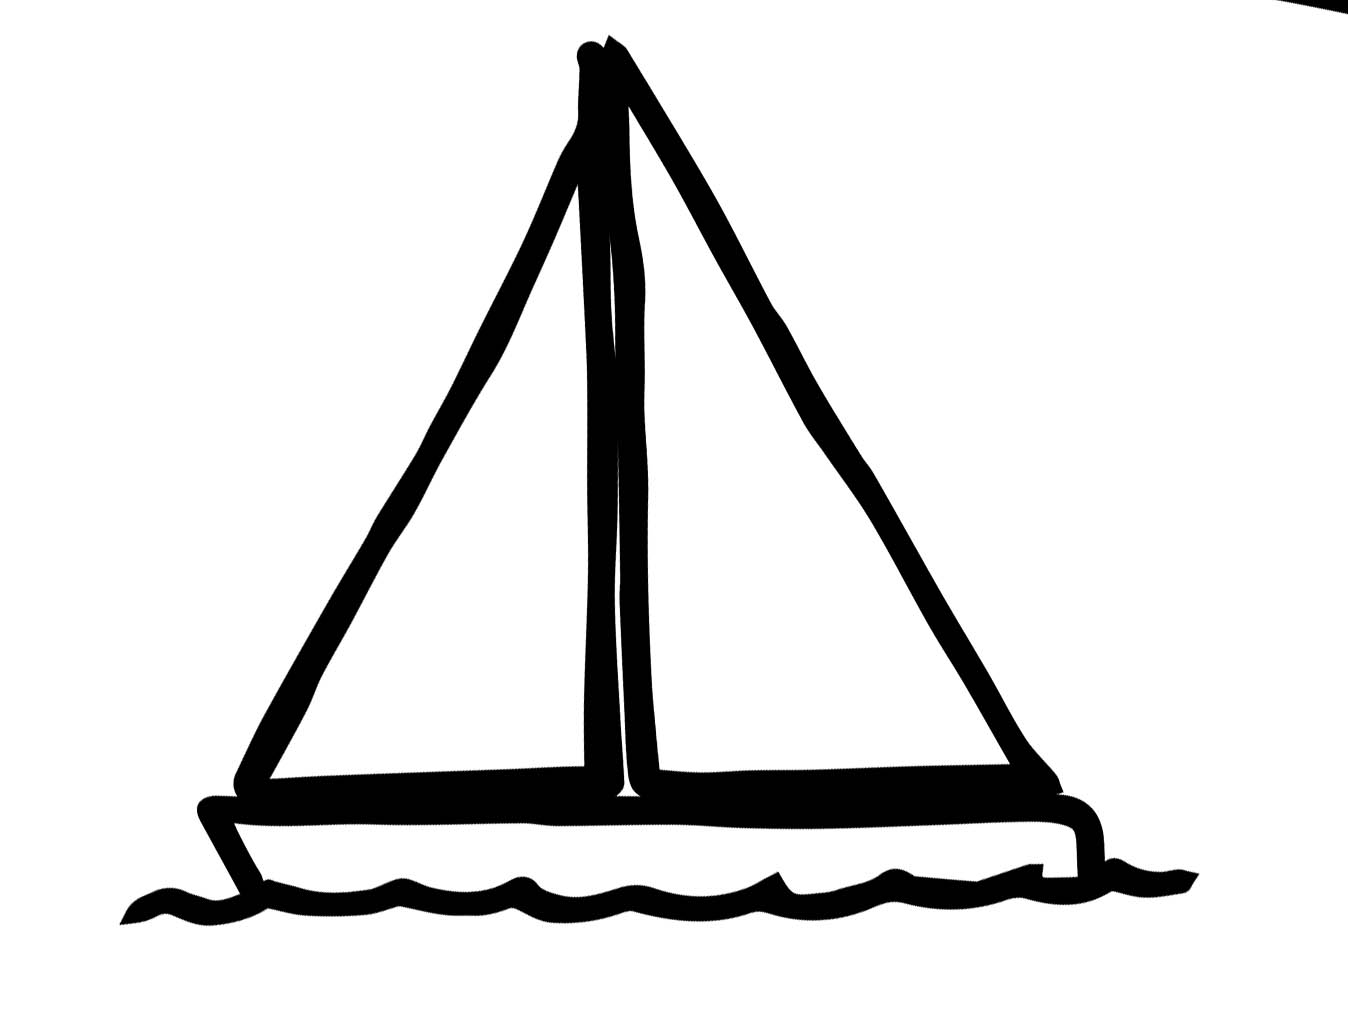 sailboat illustration.jpg